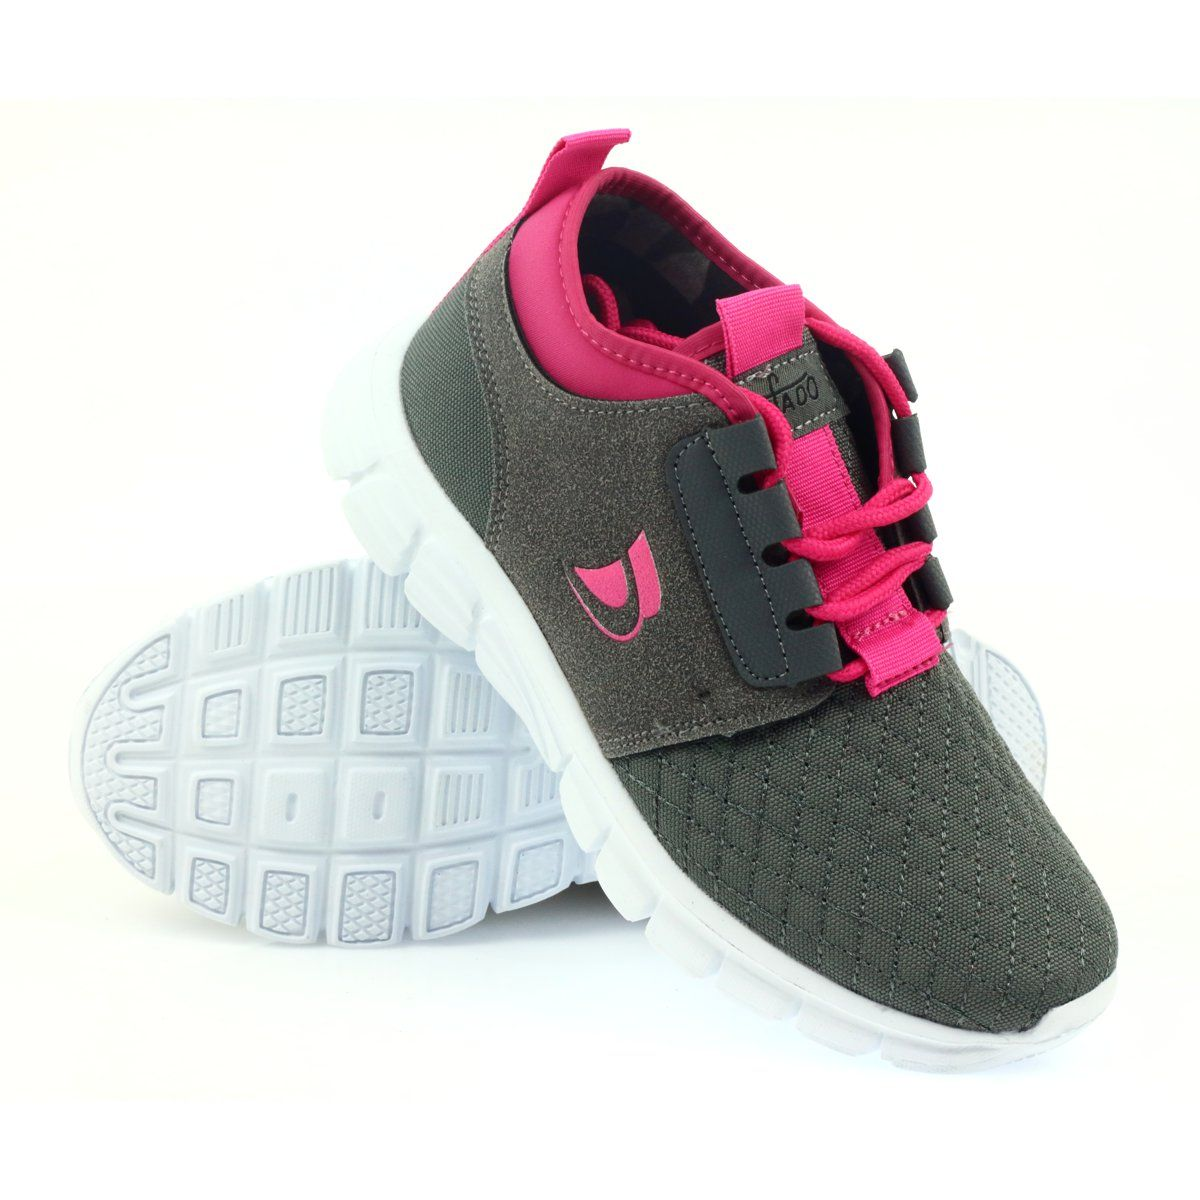 Befado Children S Shoes Up To 23 Cm 516y032 Pink Grey Childrens Shoes Kid Shoes Shoes